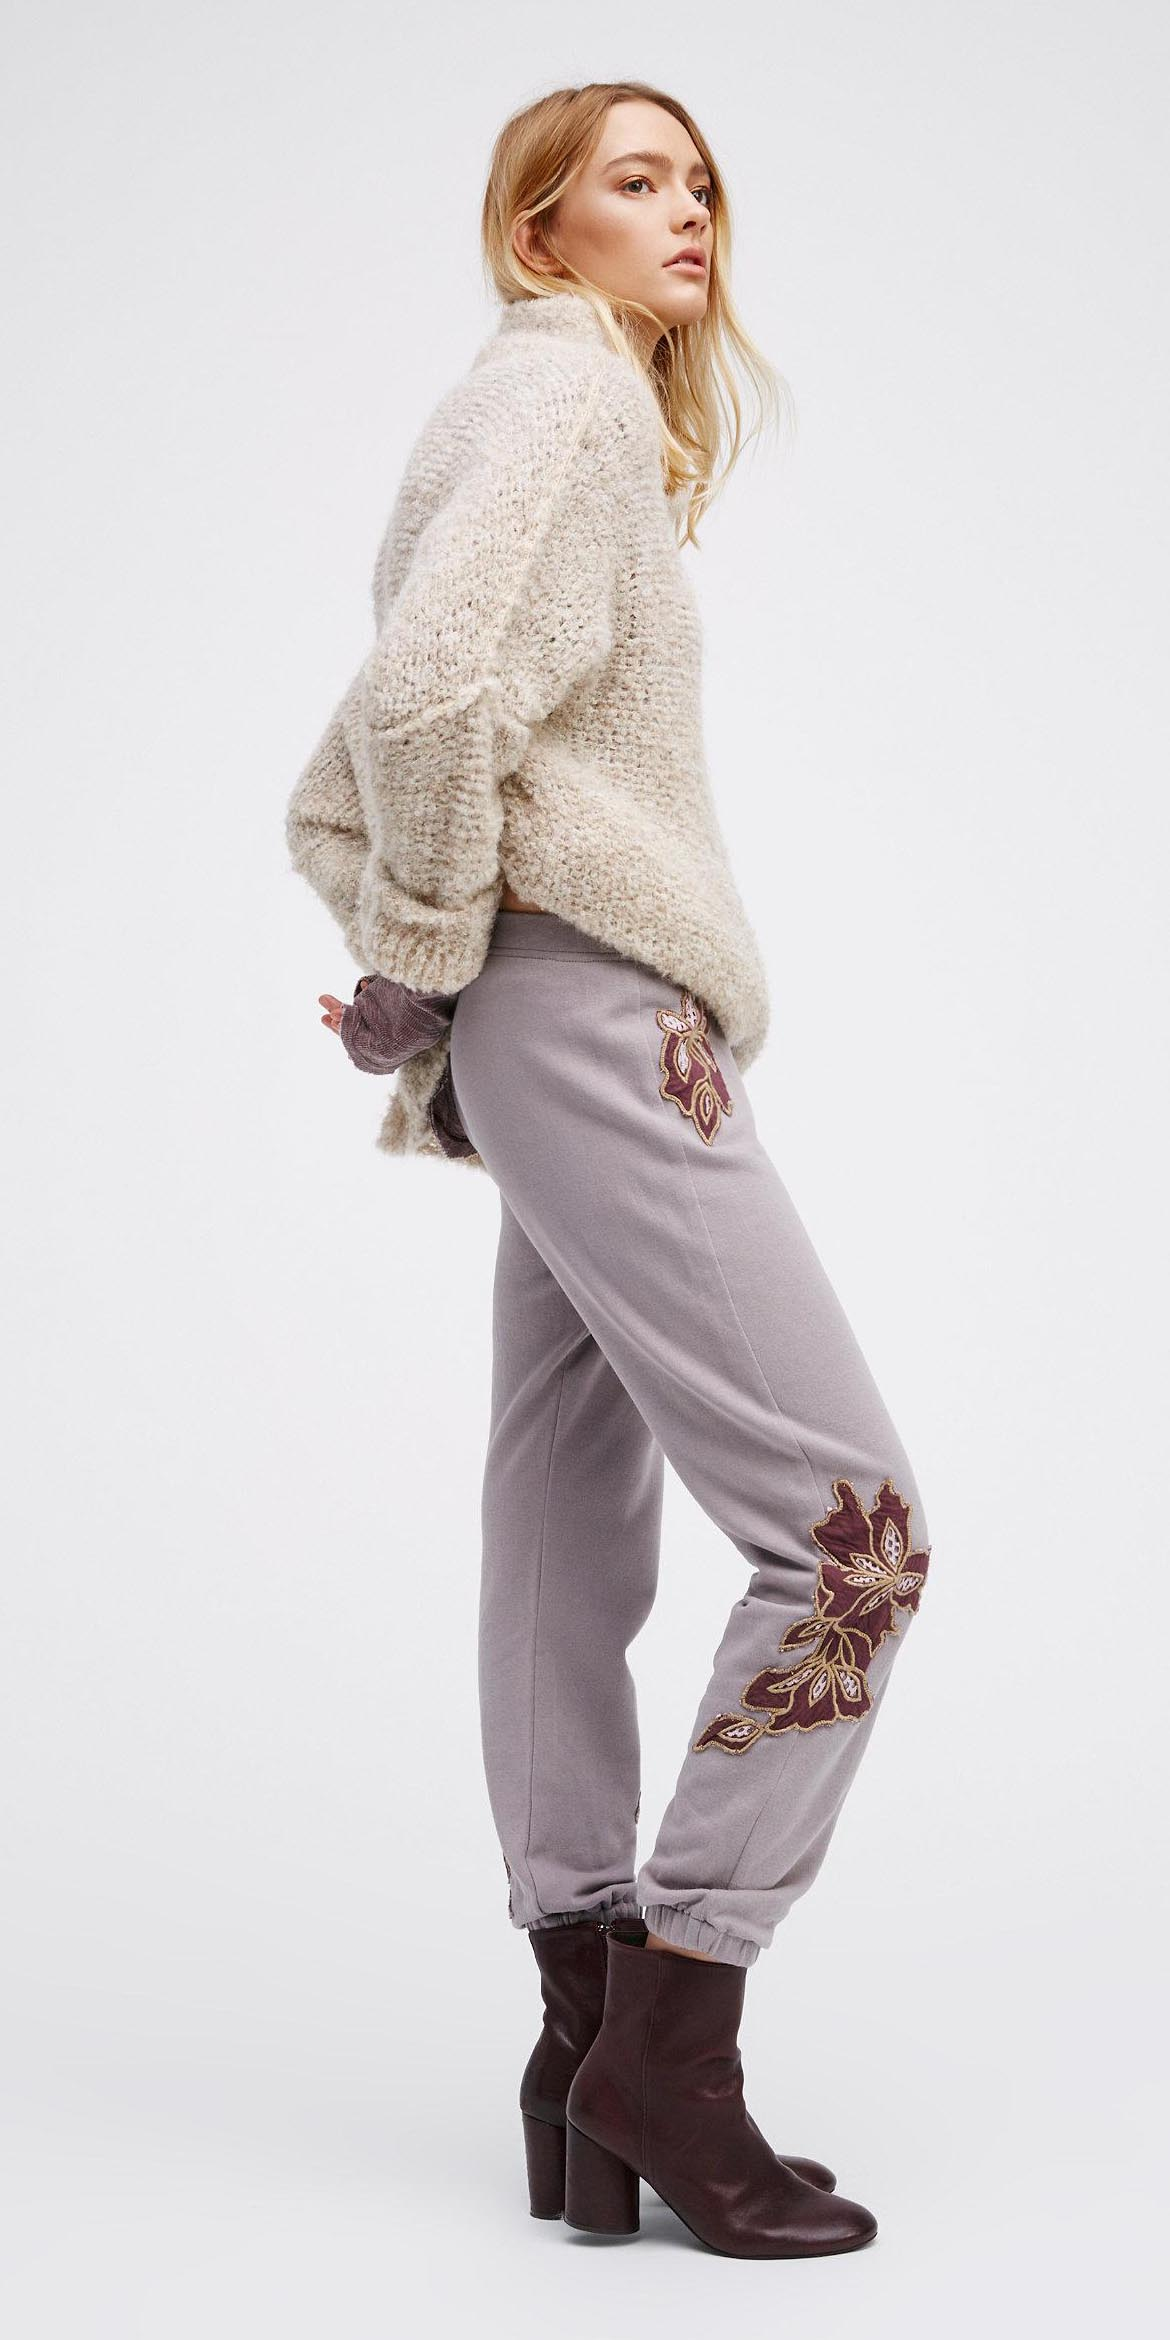 purple-light-joggers-pants-white-sweater-burgundy-shoe-booties-freepeople-fall-winter-blonde-weekend.jpeg